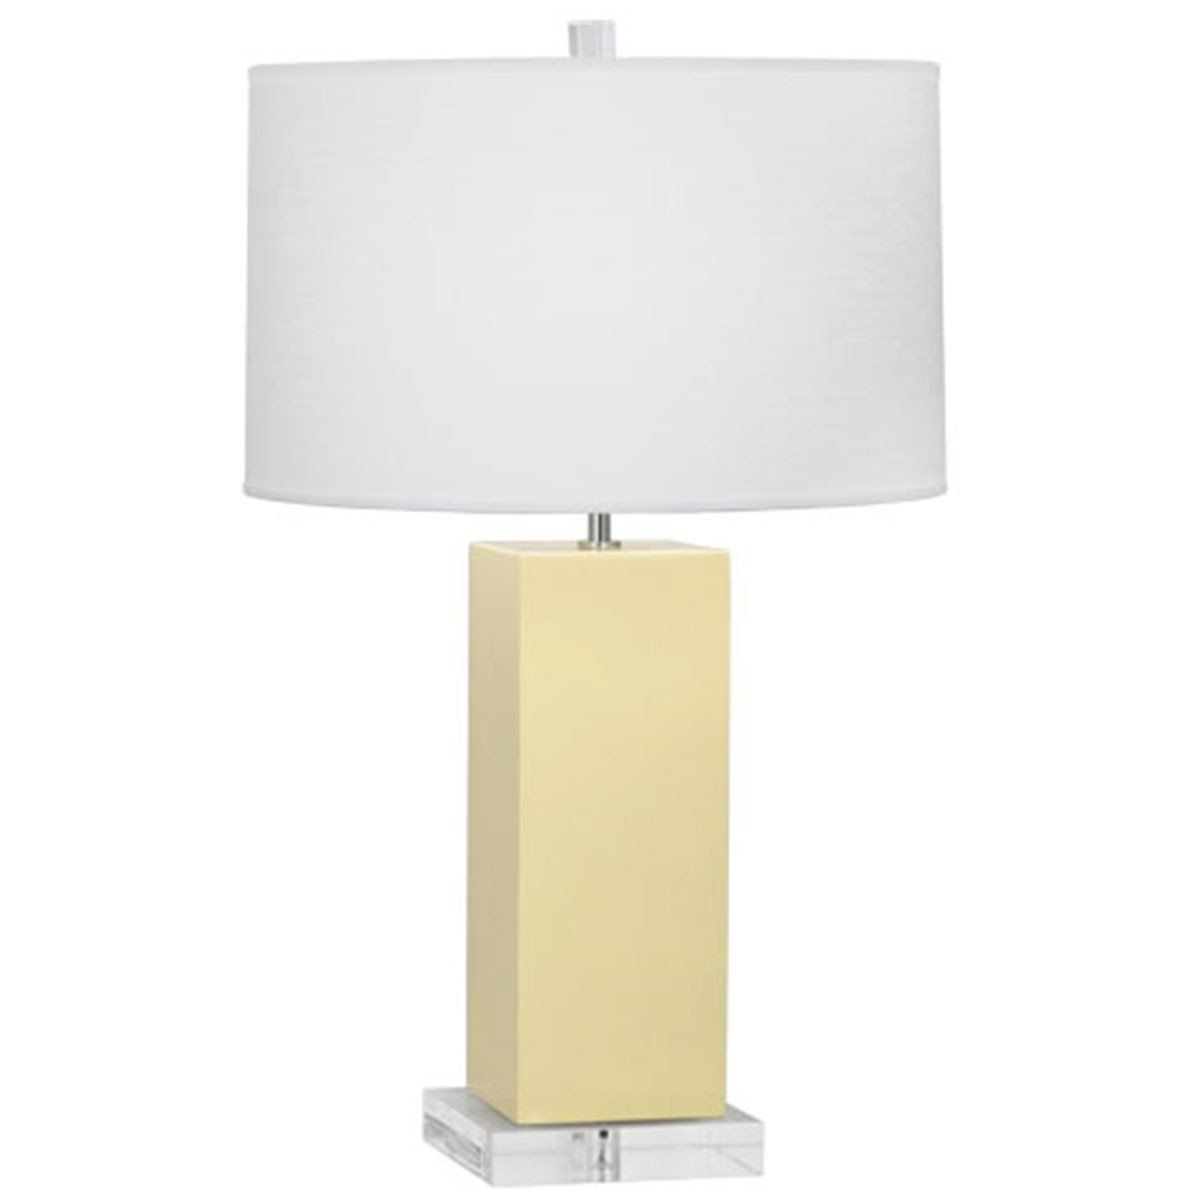 Robert Abbey Harvey Table Lamp Table Lamp Ceramic Table Lamps